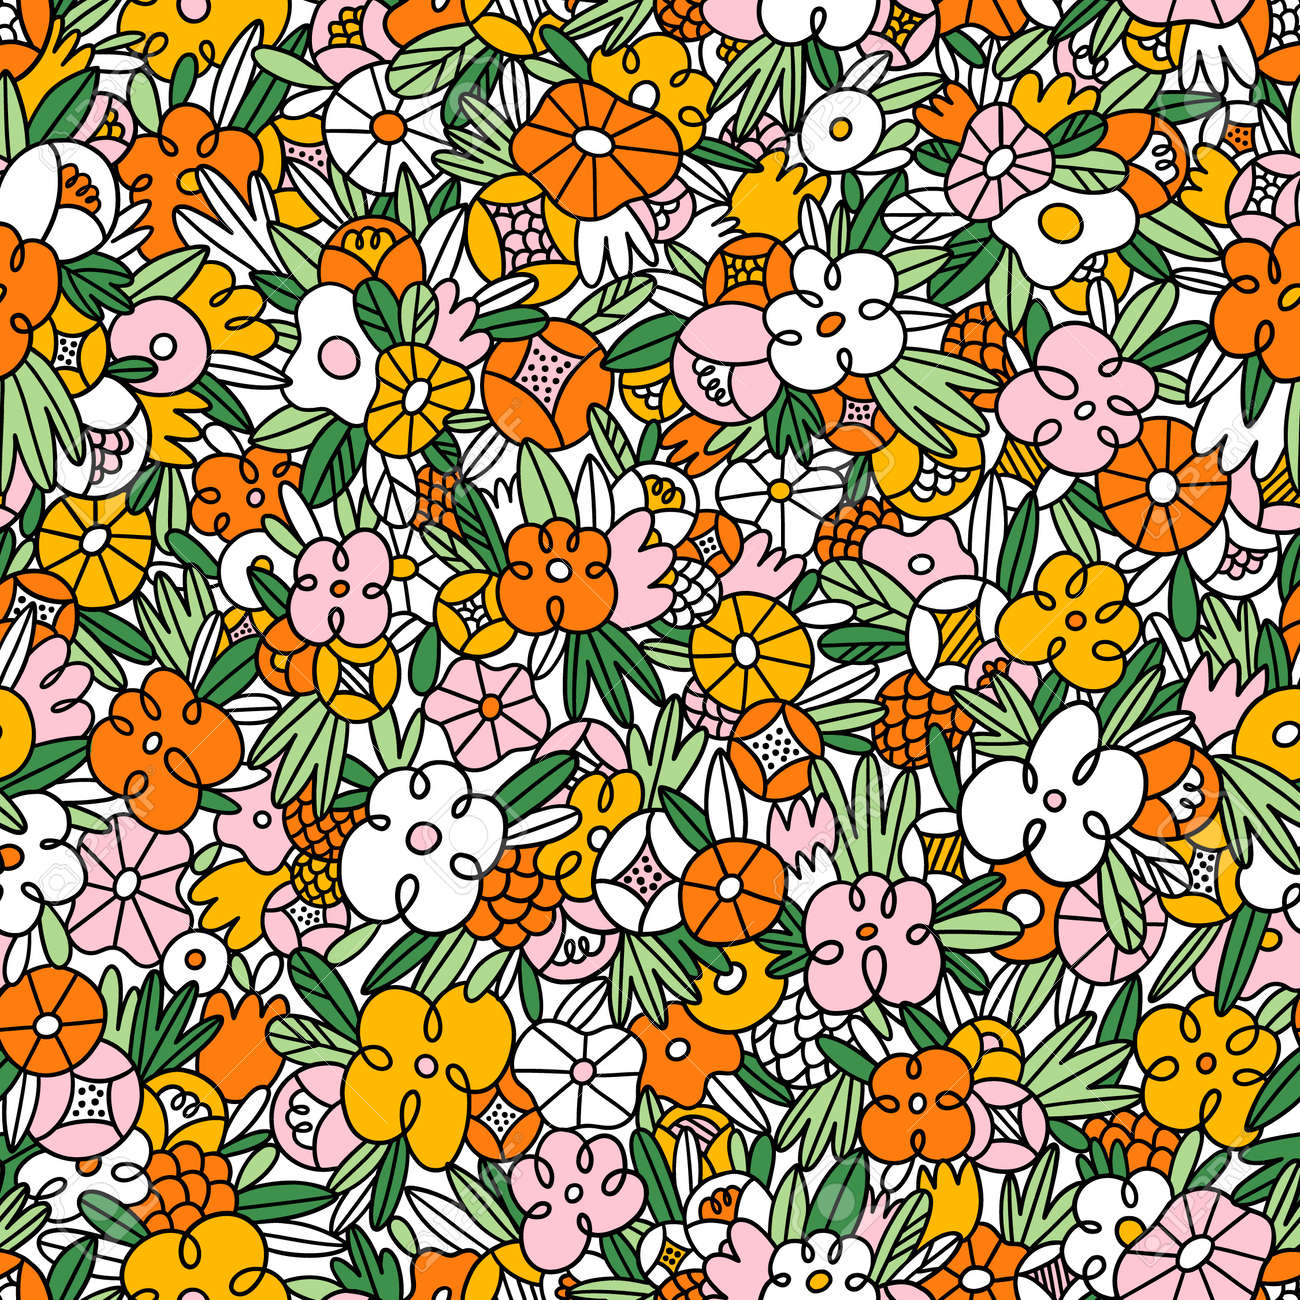 Wild flowers and grass in crazy doodles style, colorful vector seamless pattern - 167189532